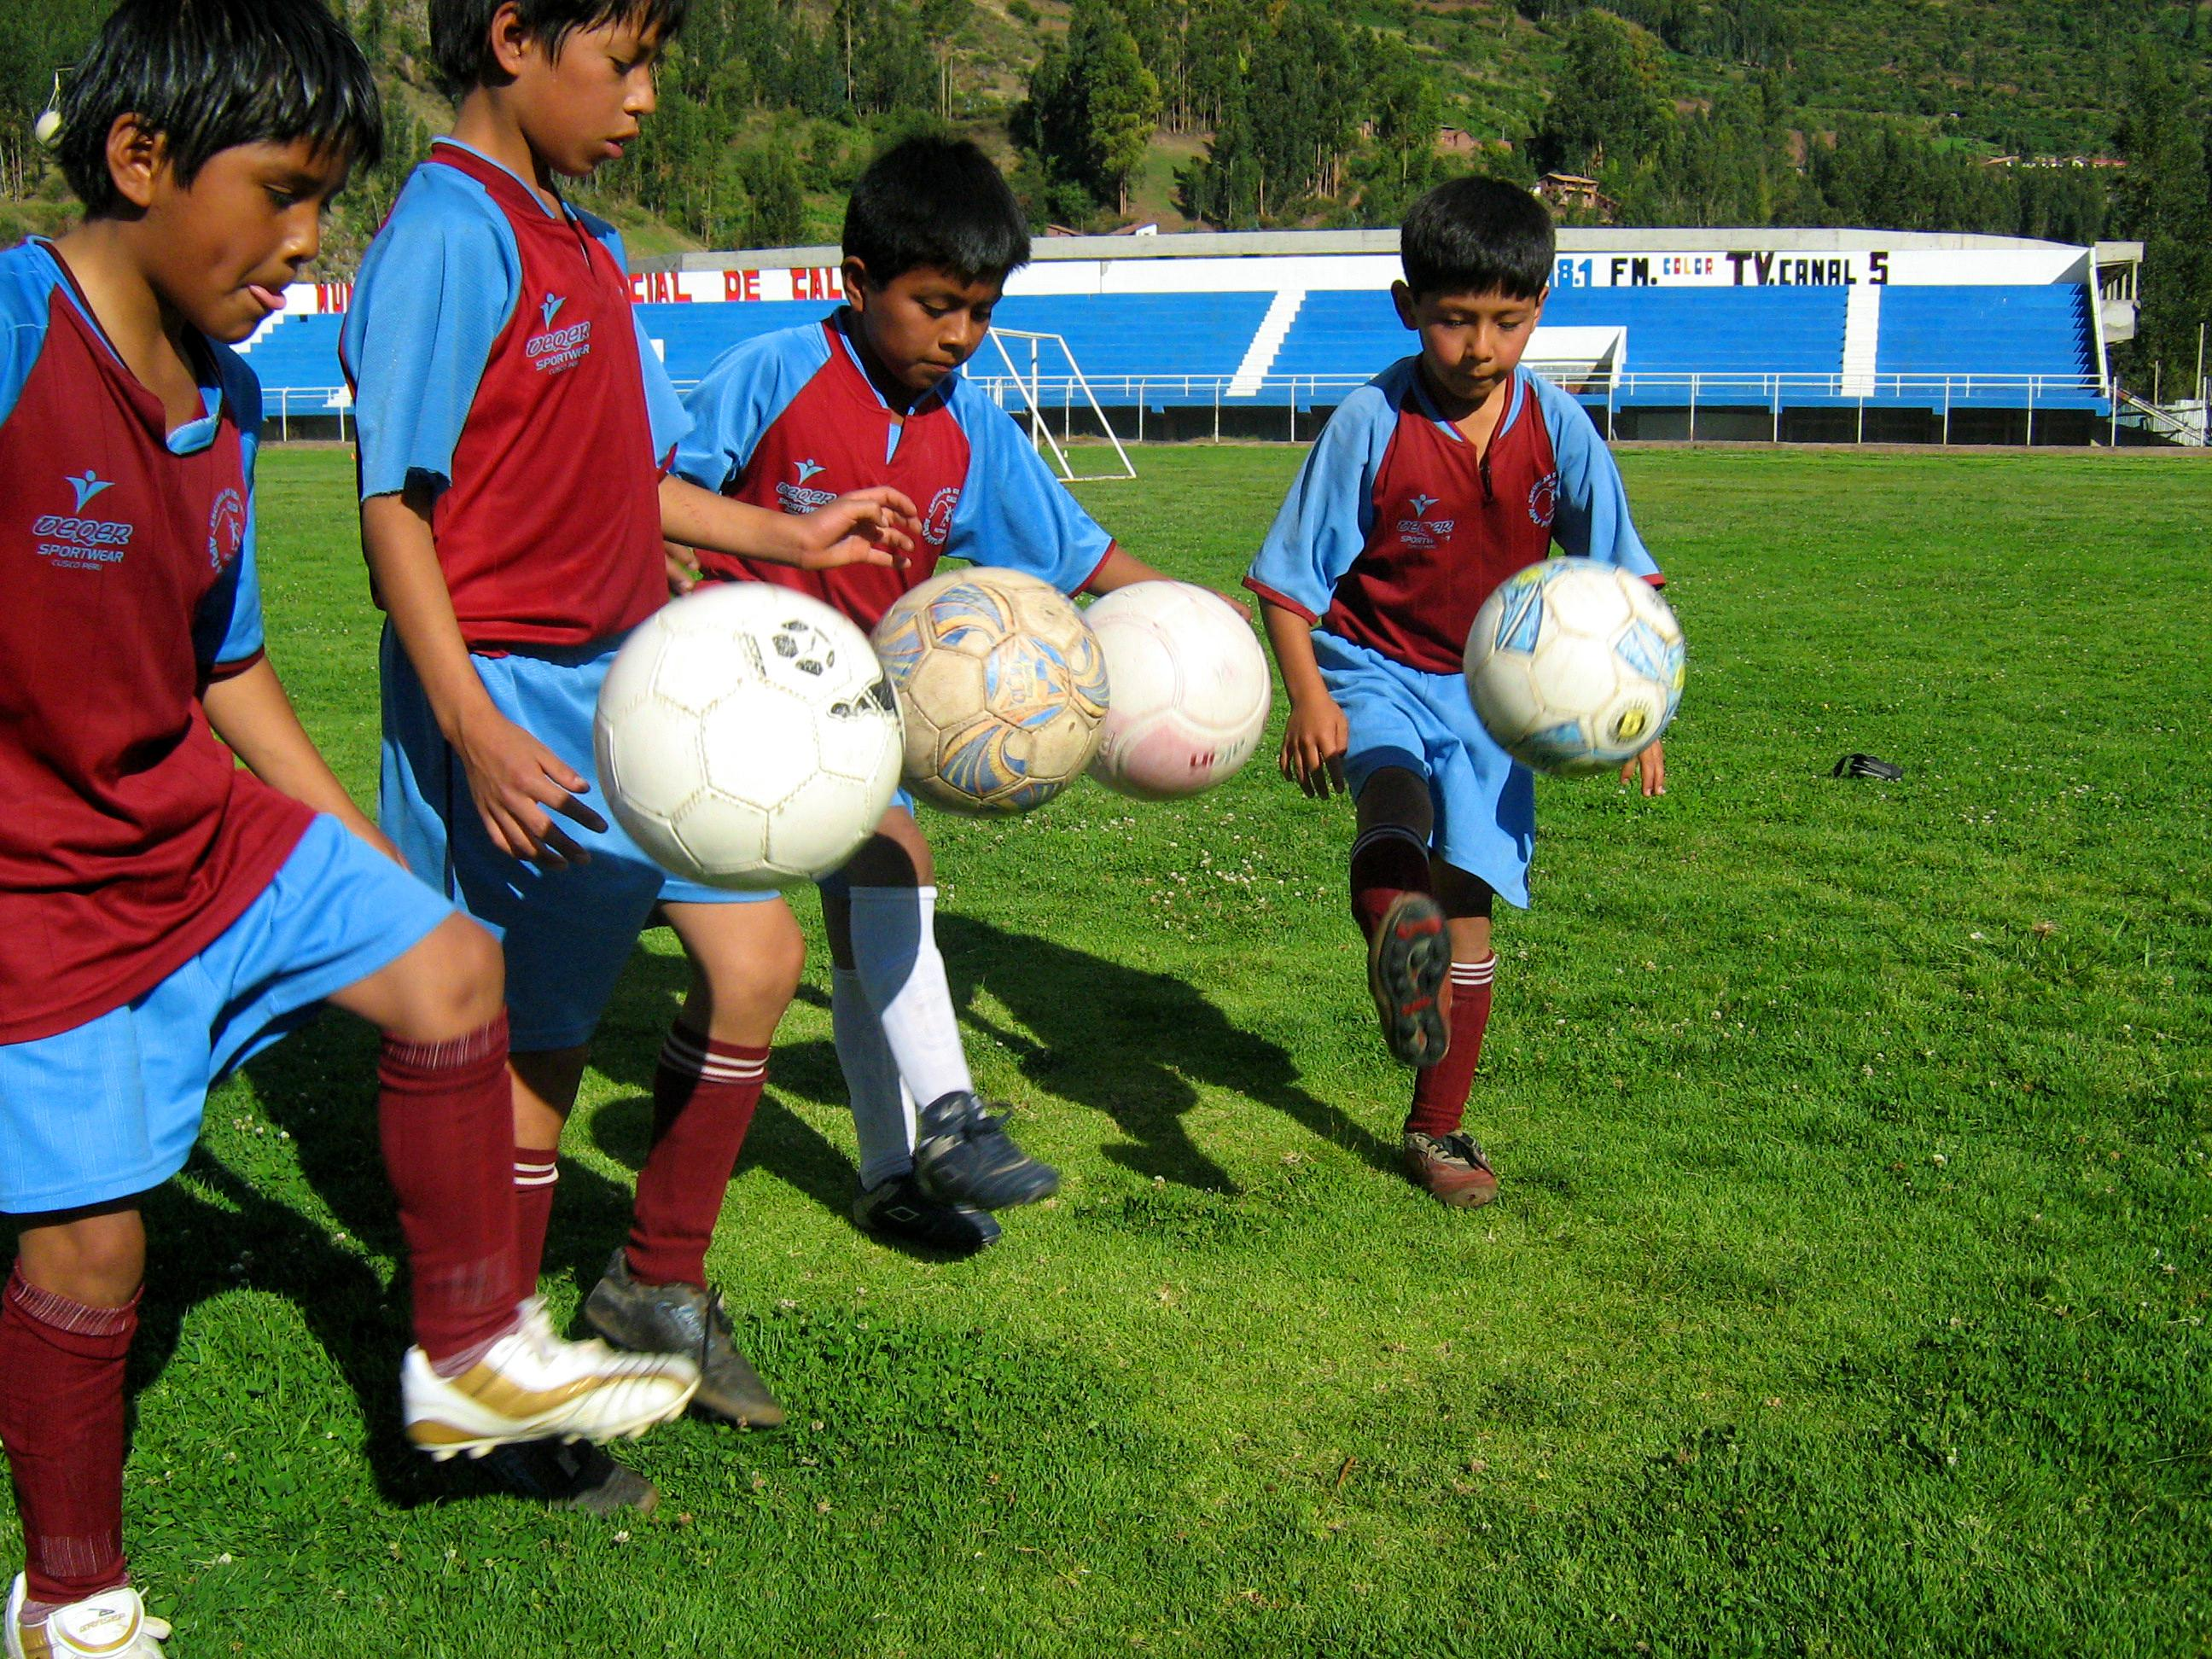 A Projects Abroad volunteer teaching sports in Peru shows children a football kicking technique